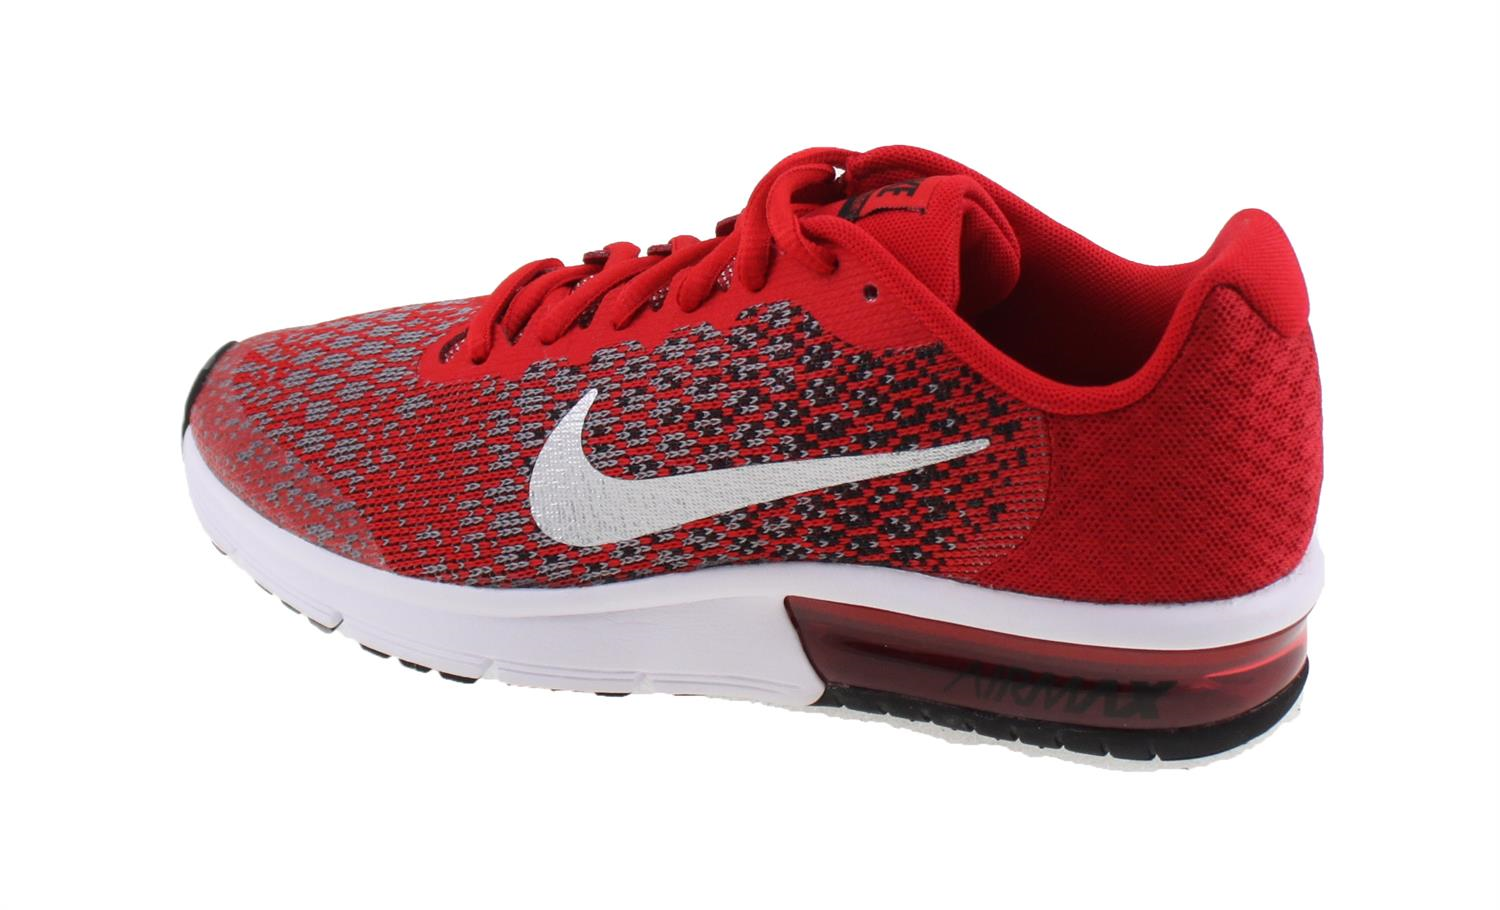 Nike Air Max Sequent 2 (GS) Koşu Ayakkabısı 869993-600